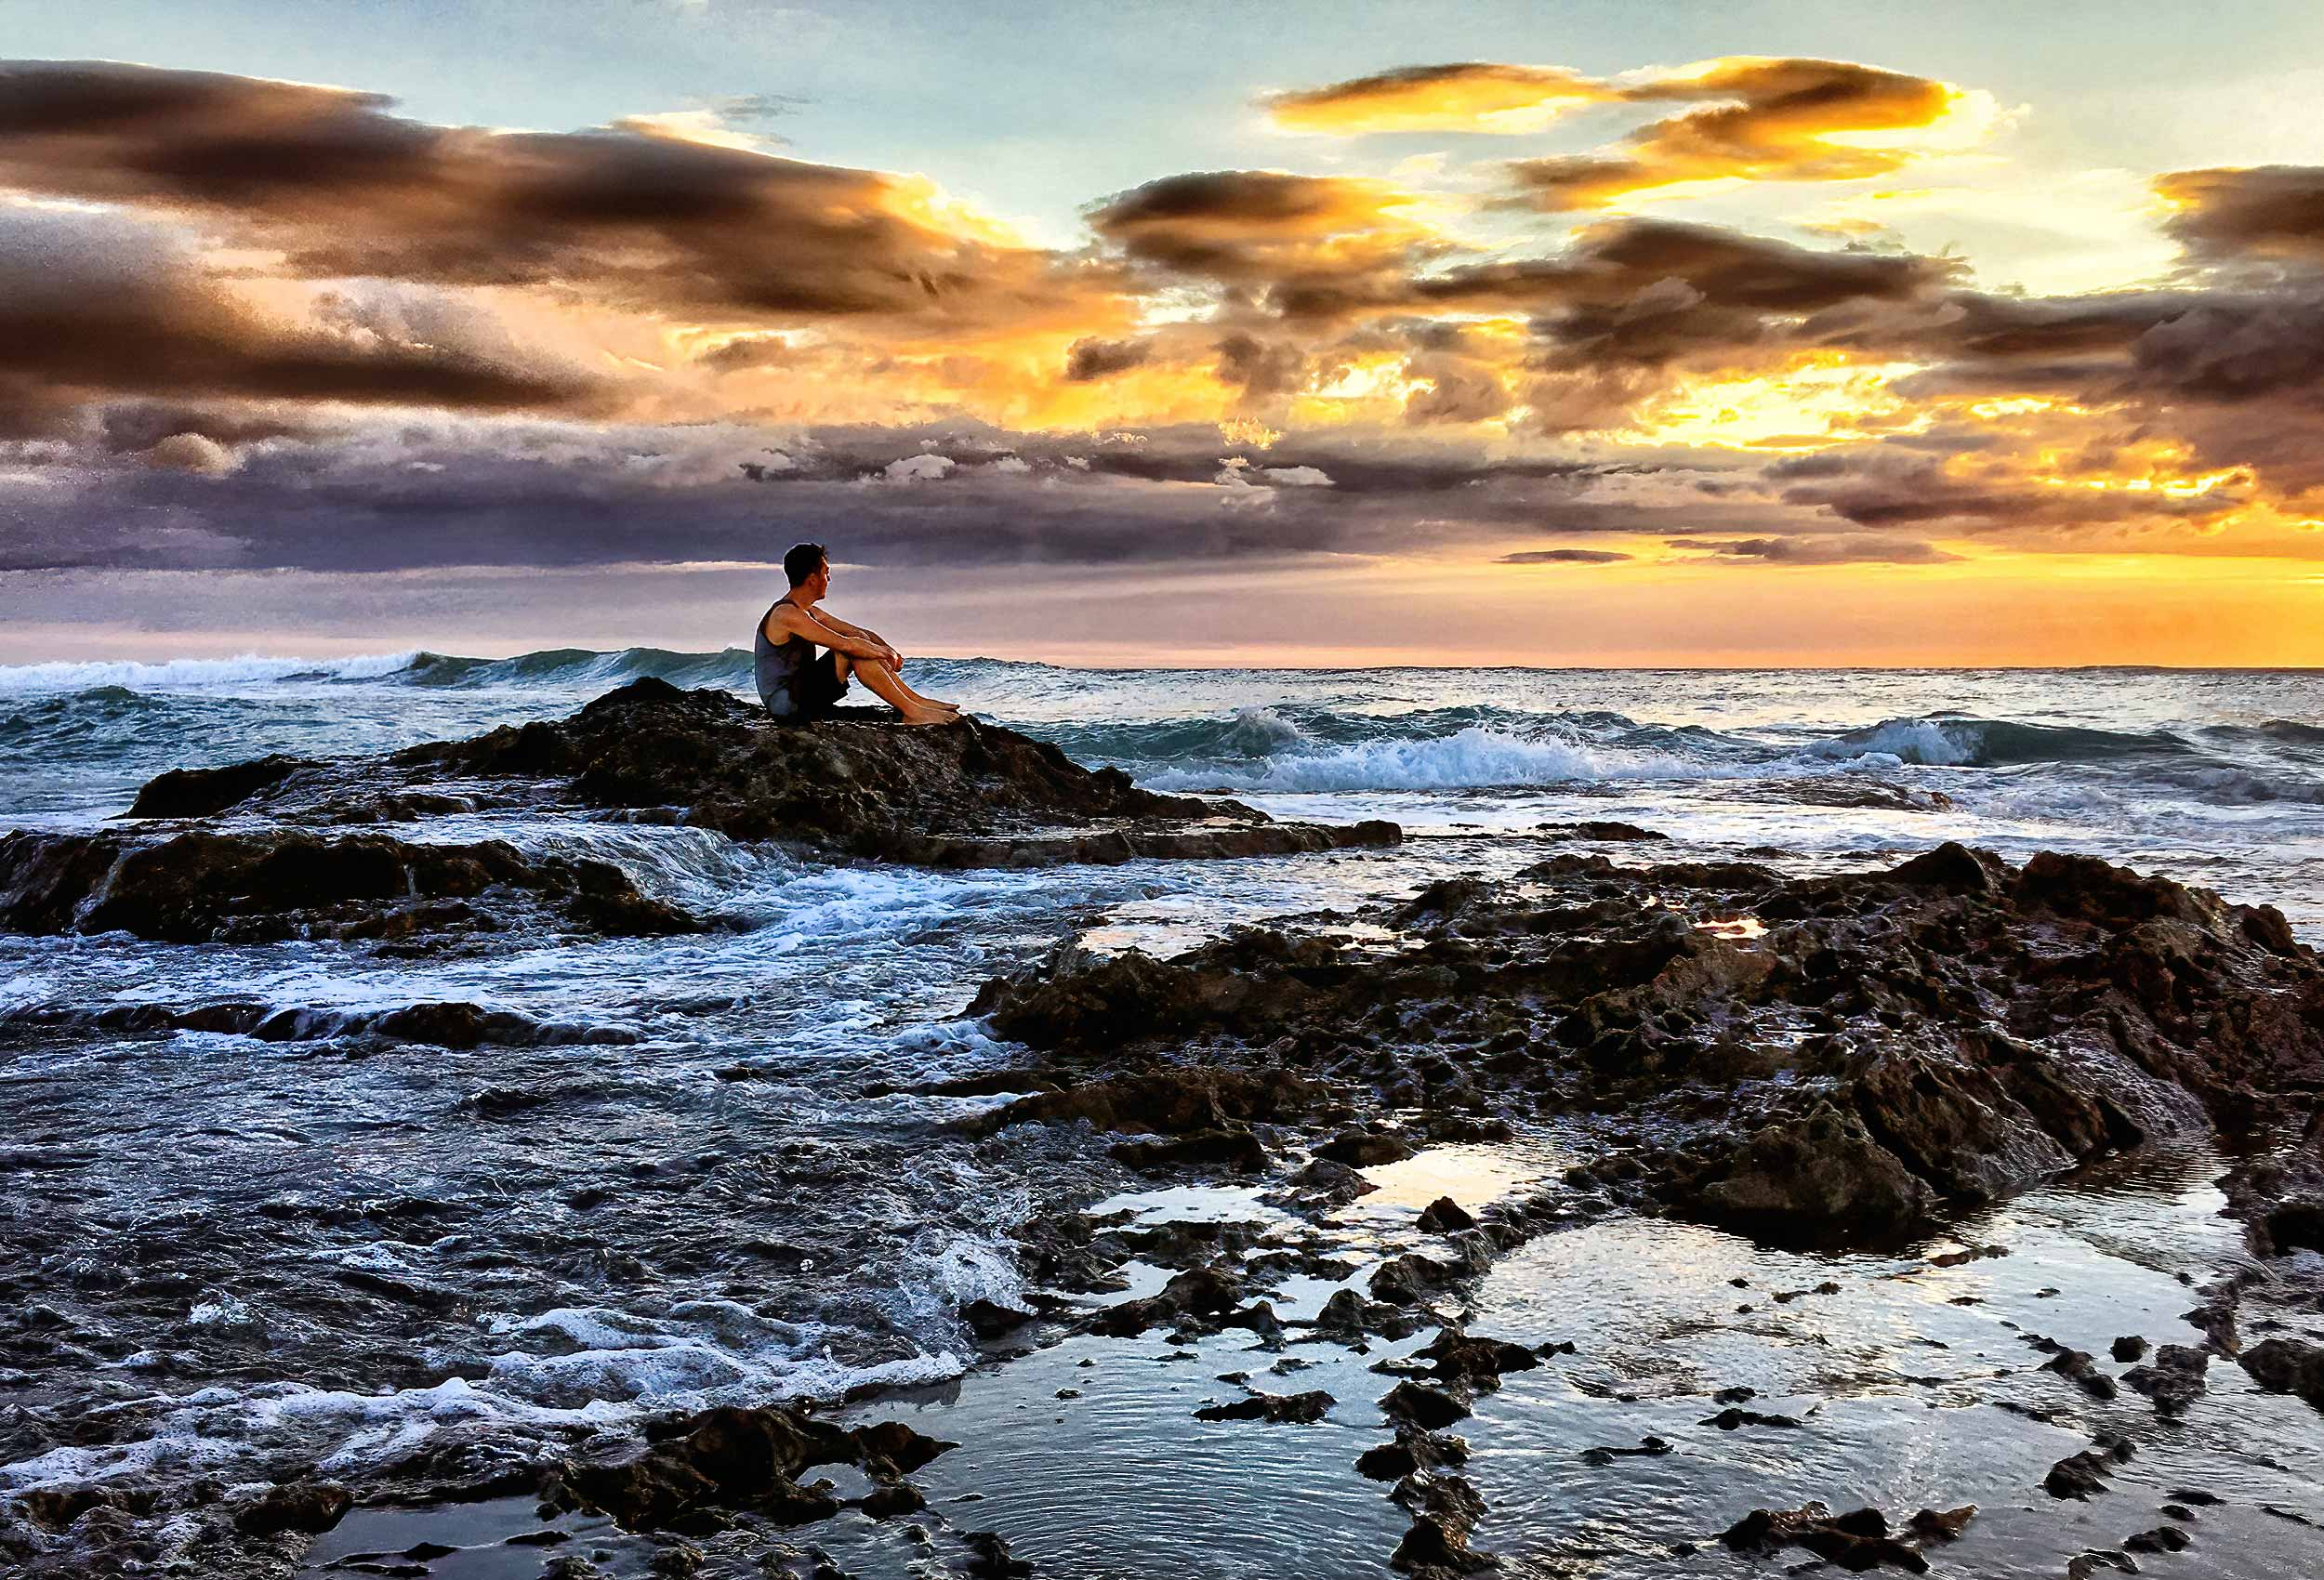 a-man-sits-on-a-rock-watching-a-sunset-by-an-editorial-photographer